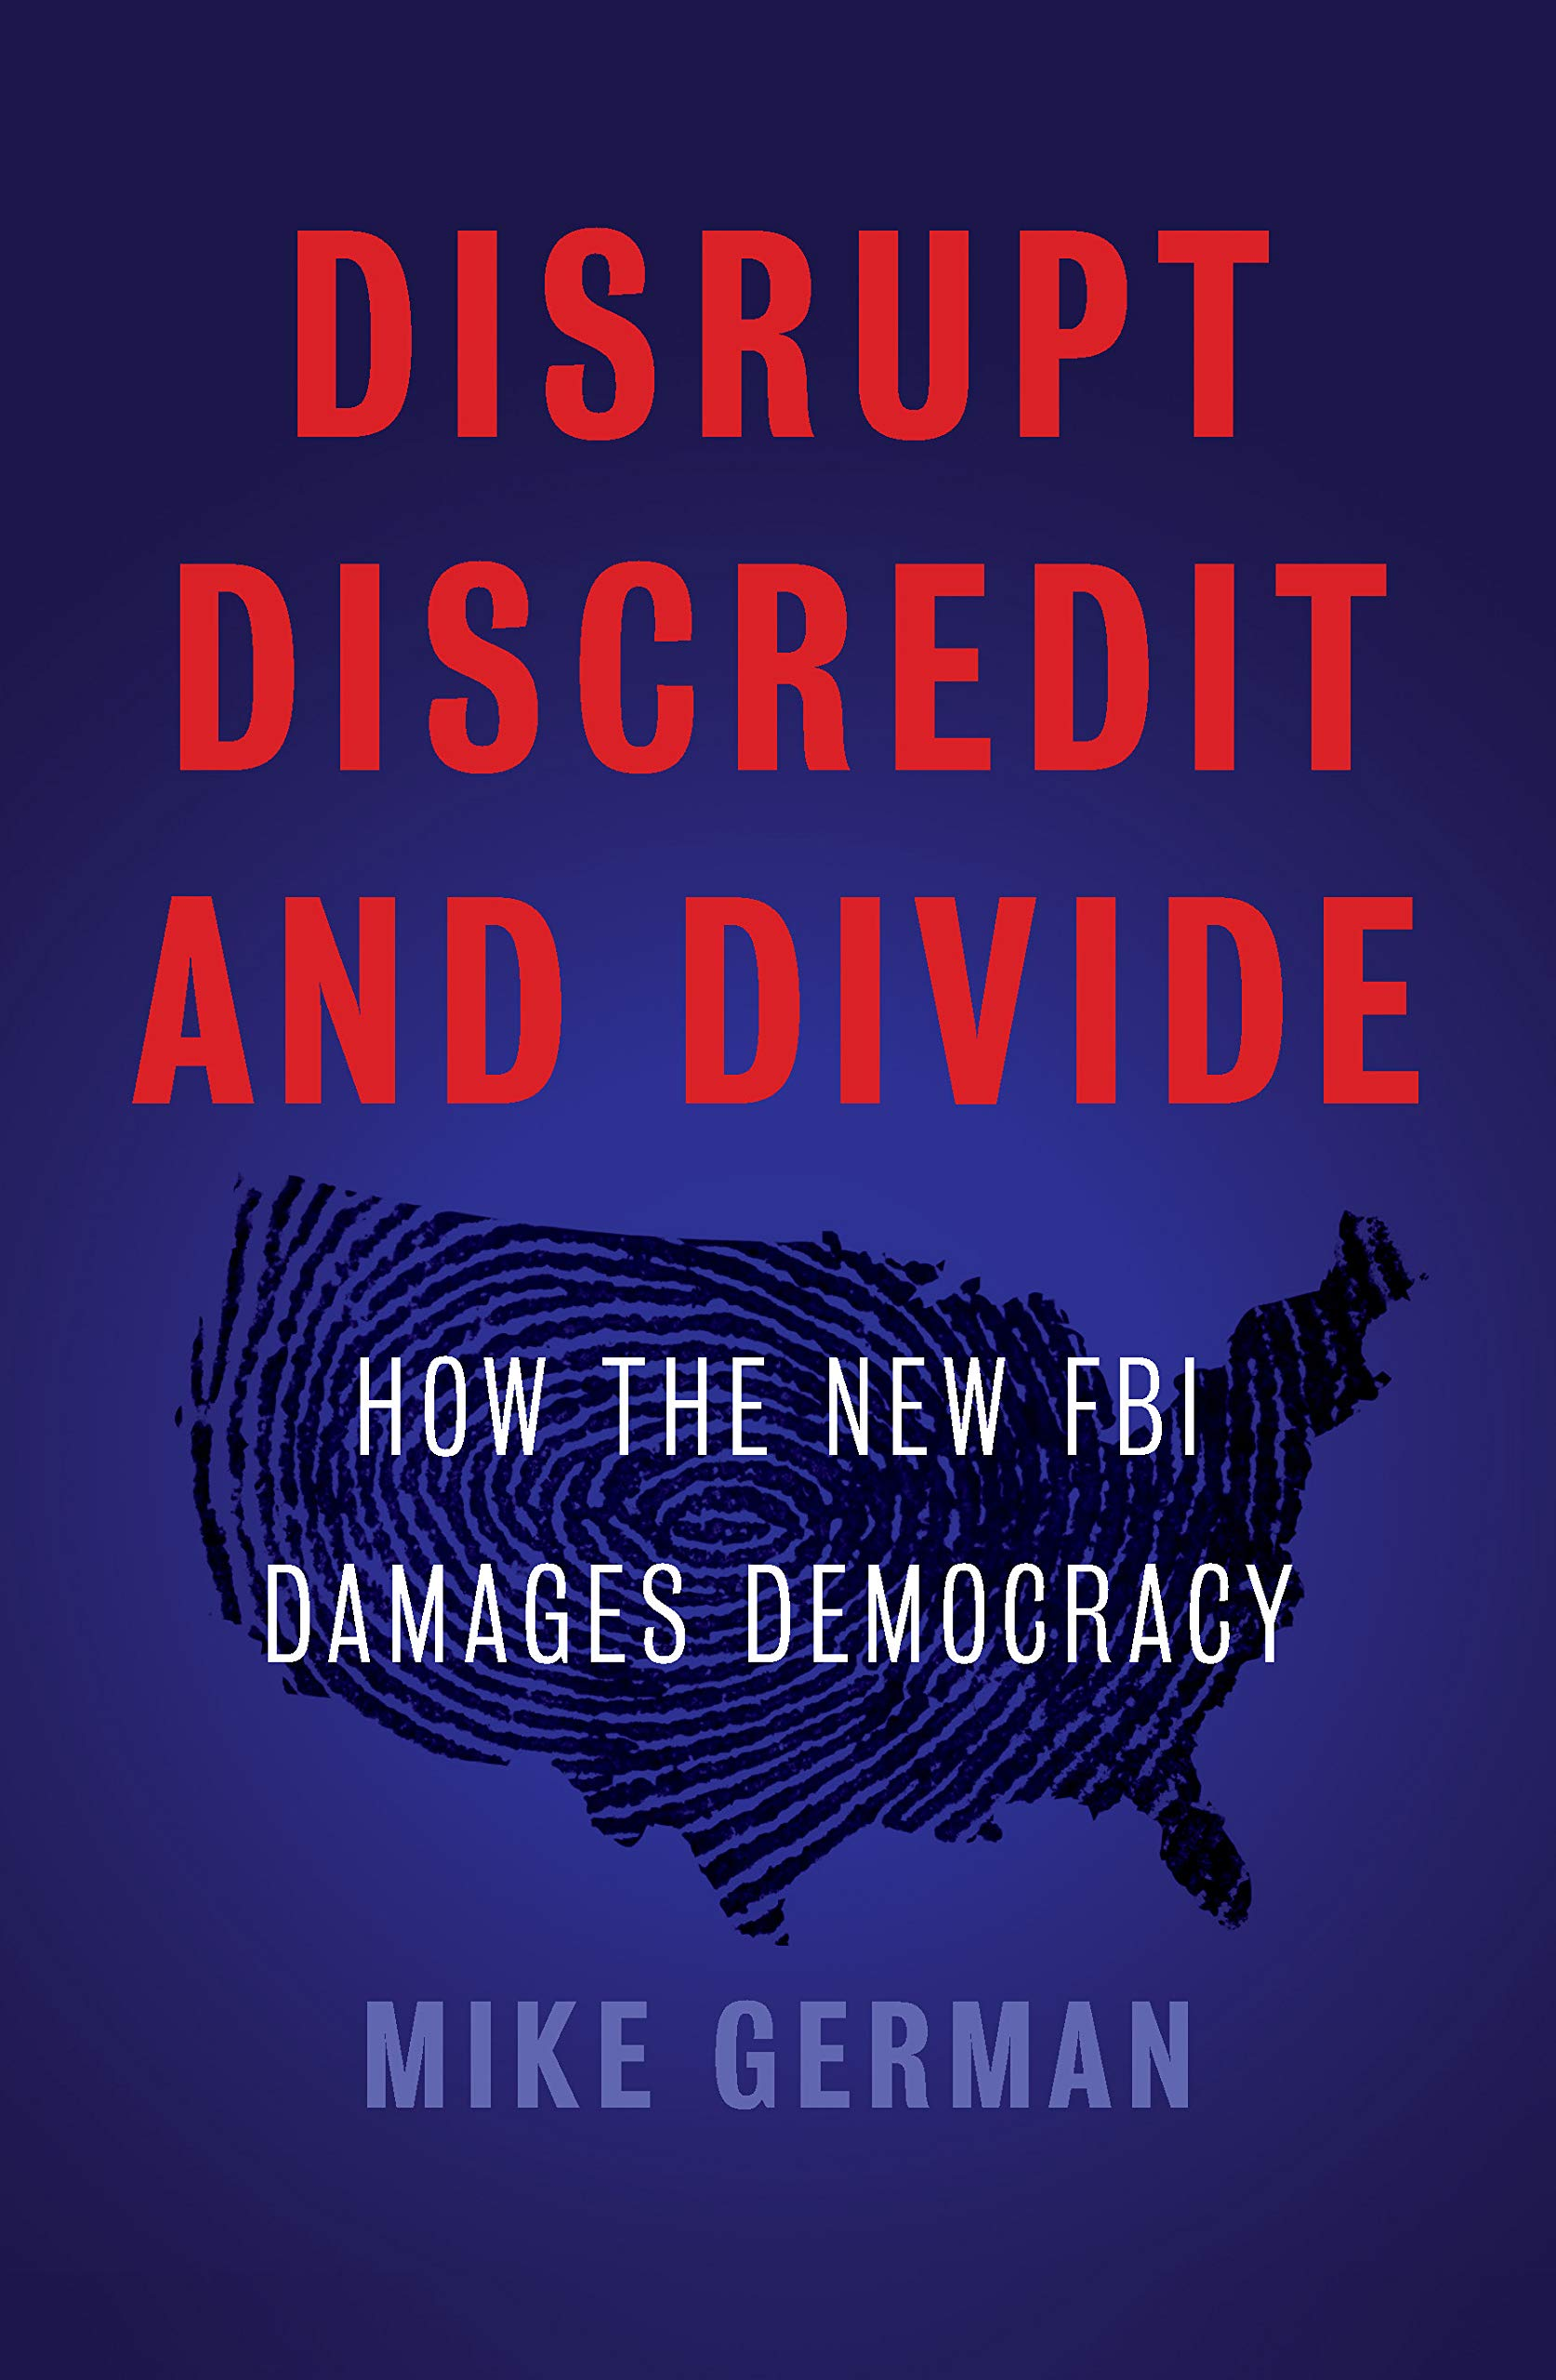 Disrupt, Discredit, and Divide: How the New FBI Damages Democracy